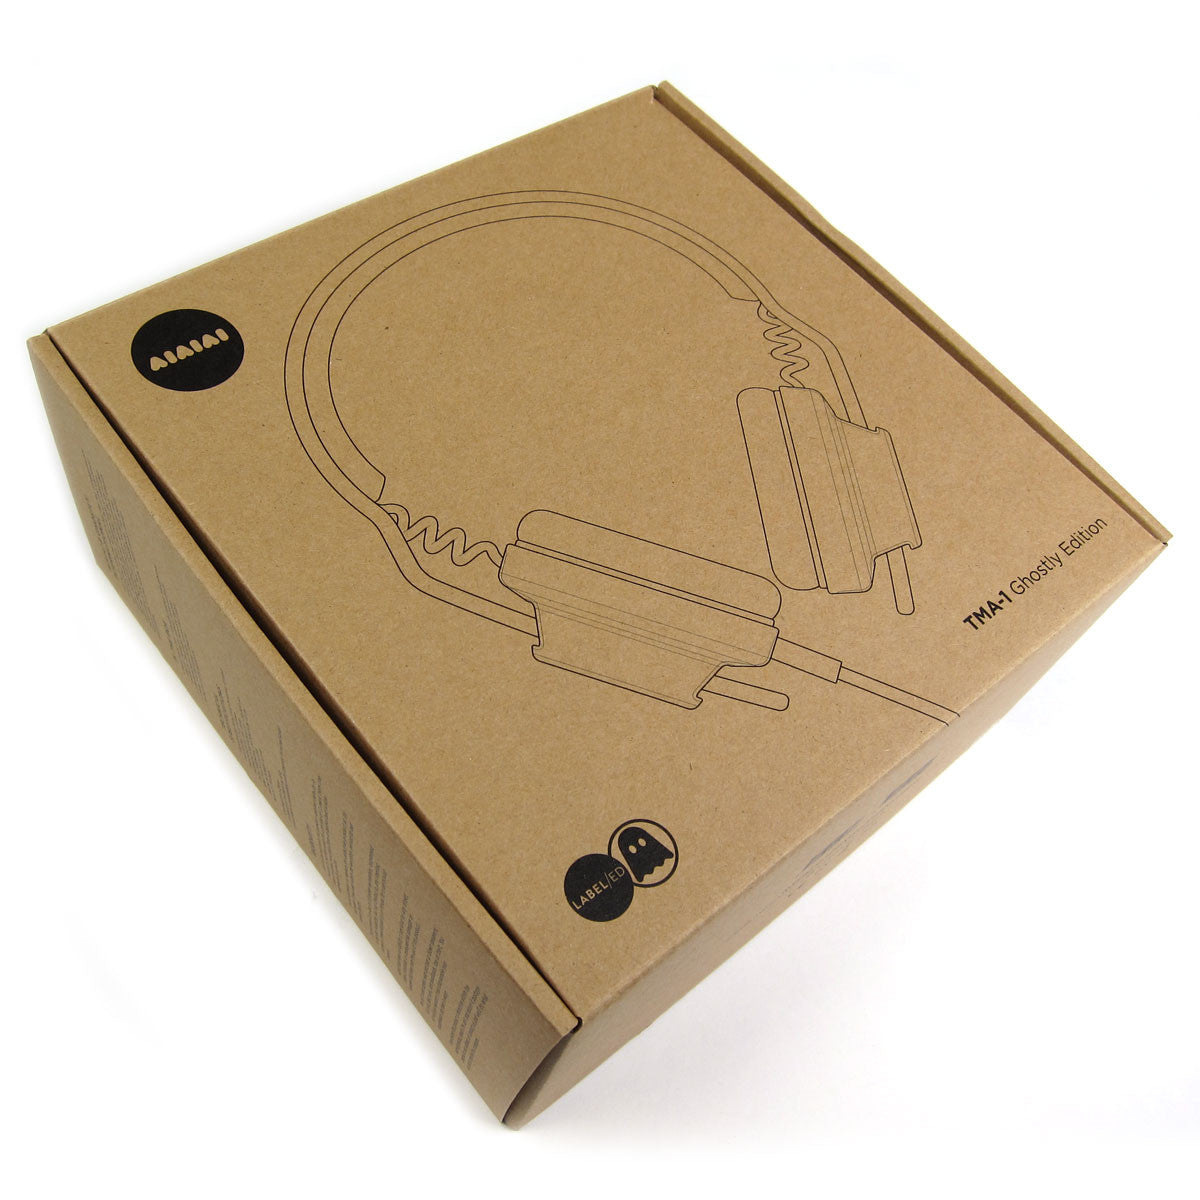 AIAIAI: TMA-1 Ghostly Edition DJ Headphones box